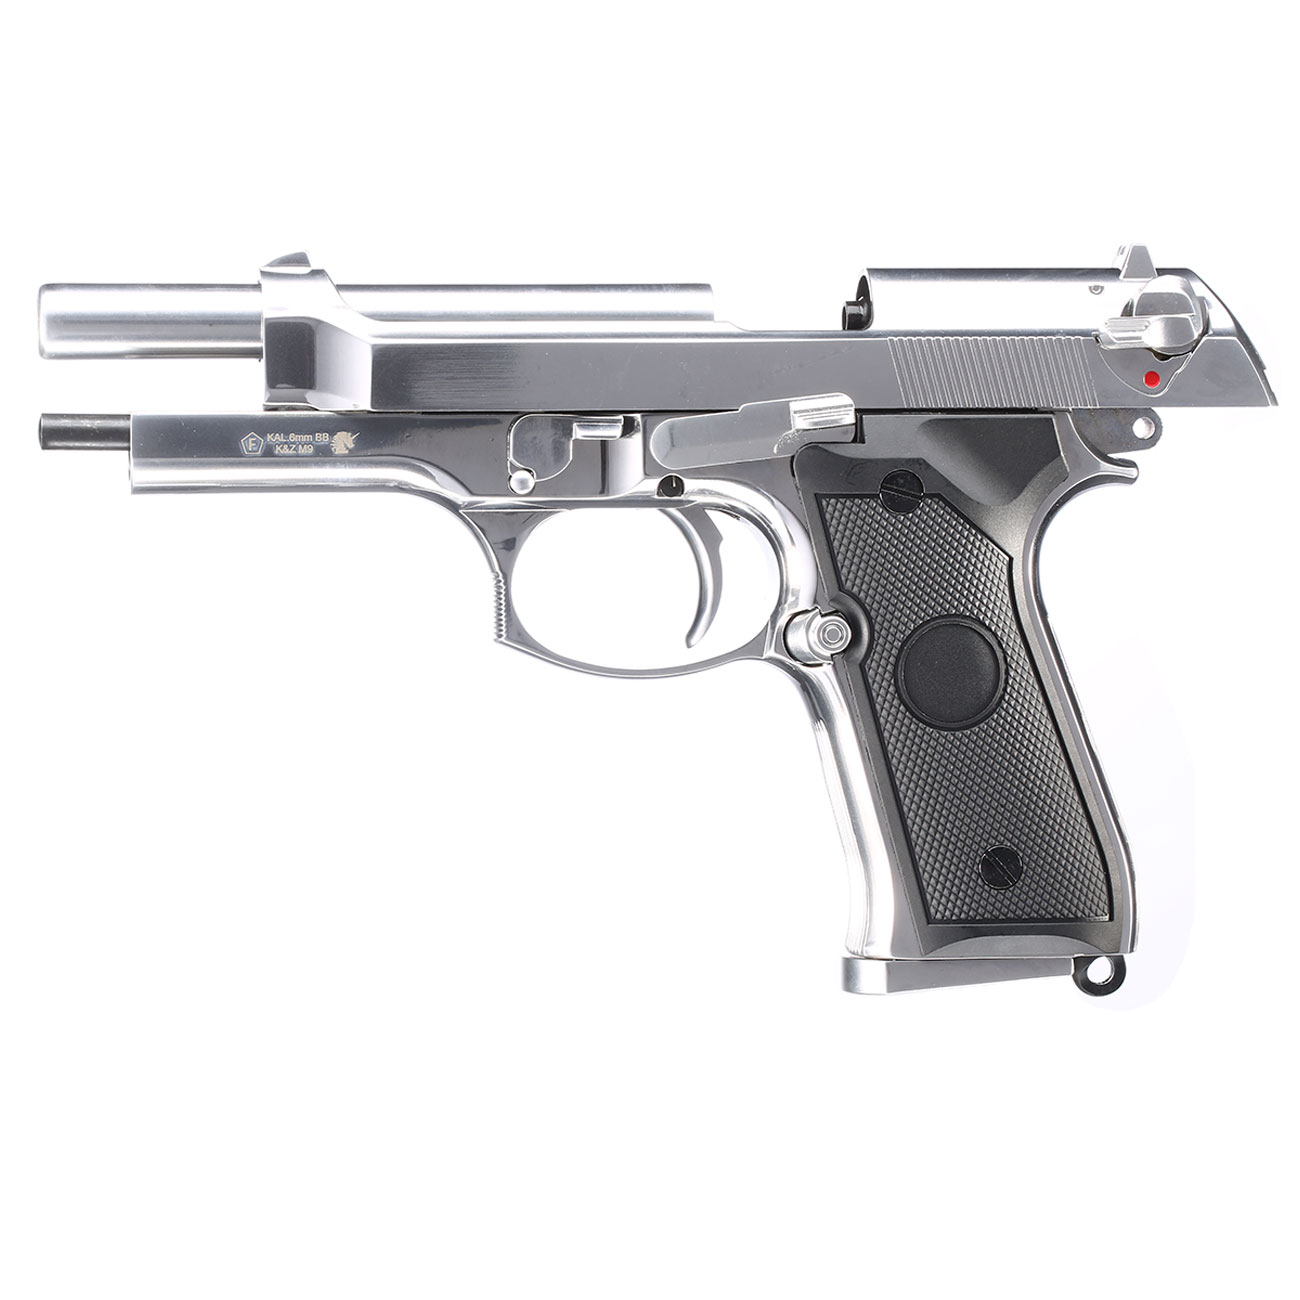 B&W Airsoft M9 Vollmetall GBB 6mm BB chrom 2